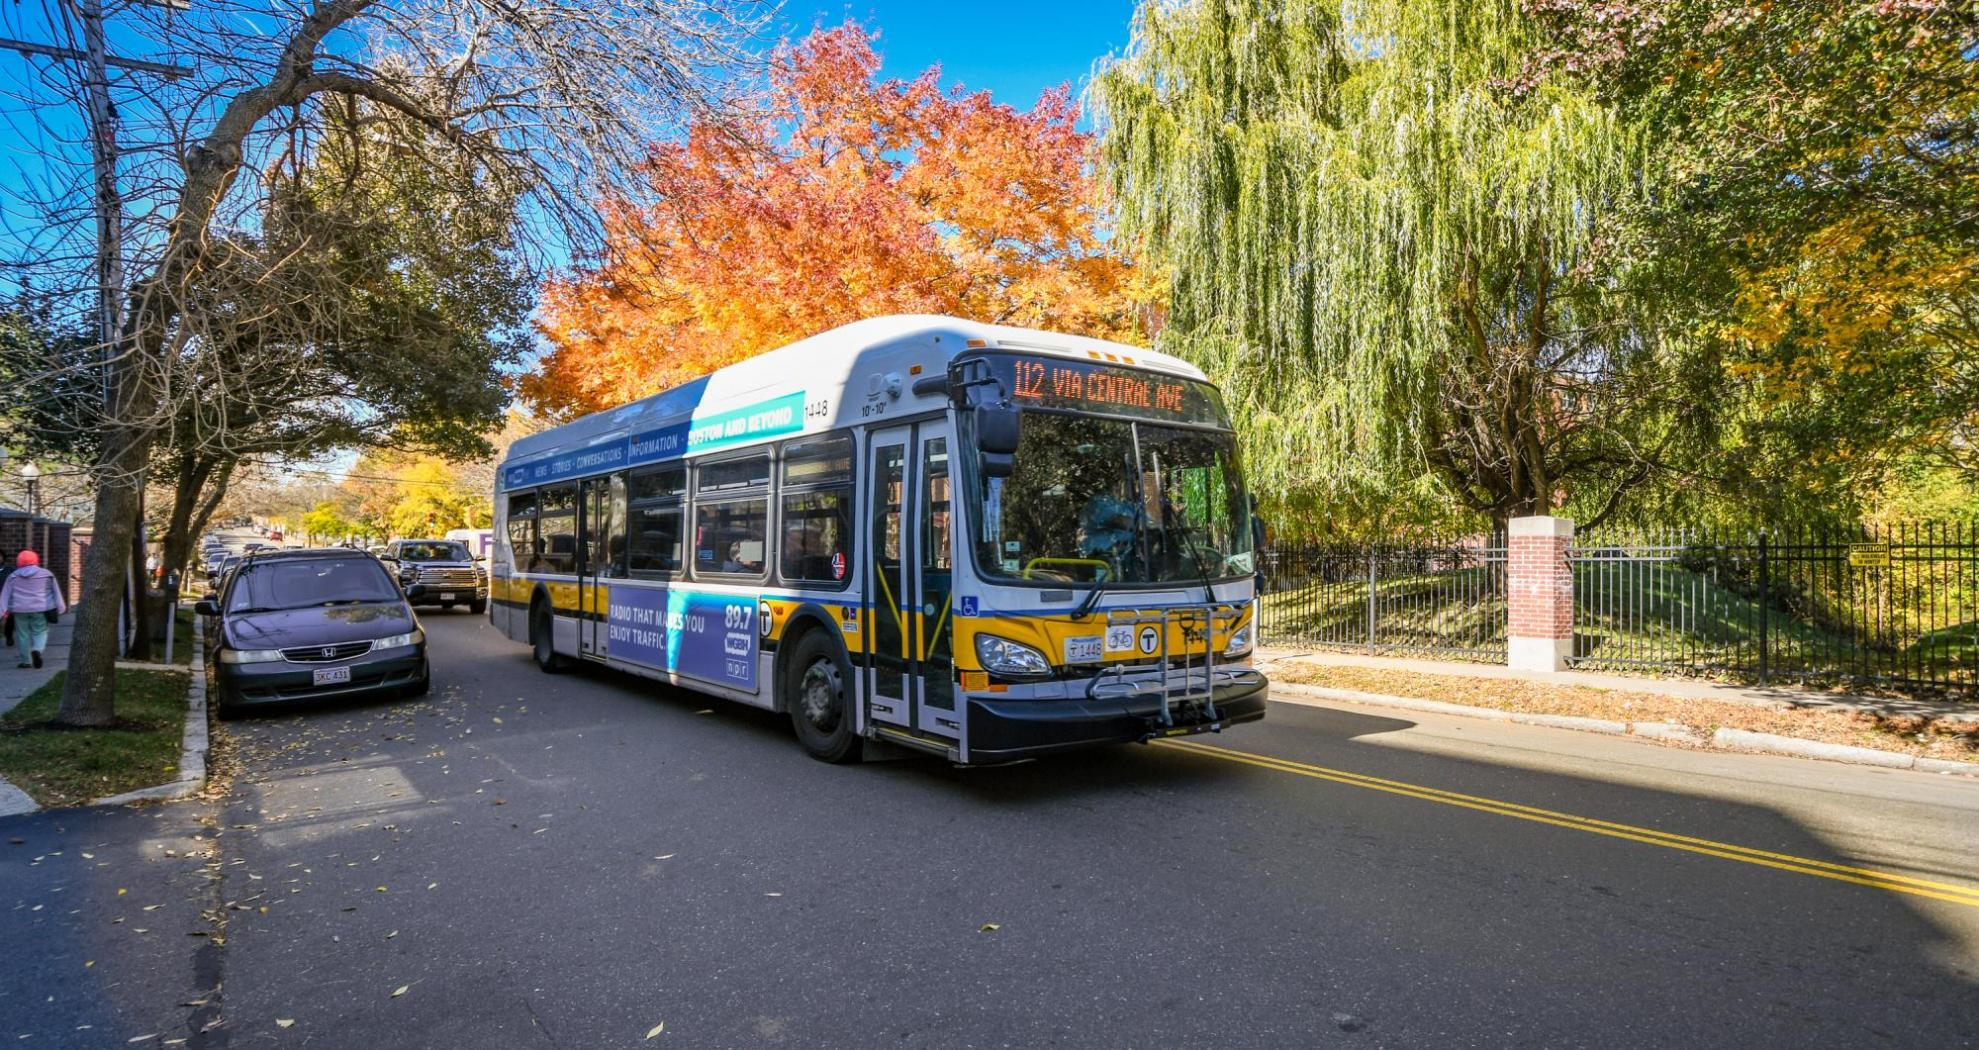 "Route 112 bus with a headsign that says ""Via Central Ave"" travels through Chelsea, with fall foliage in the background"